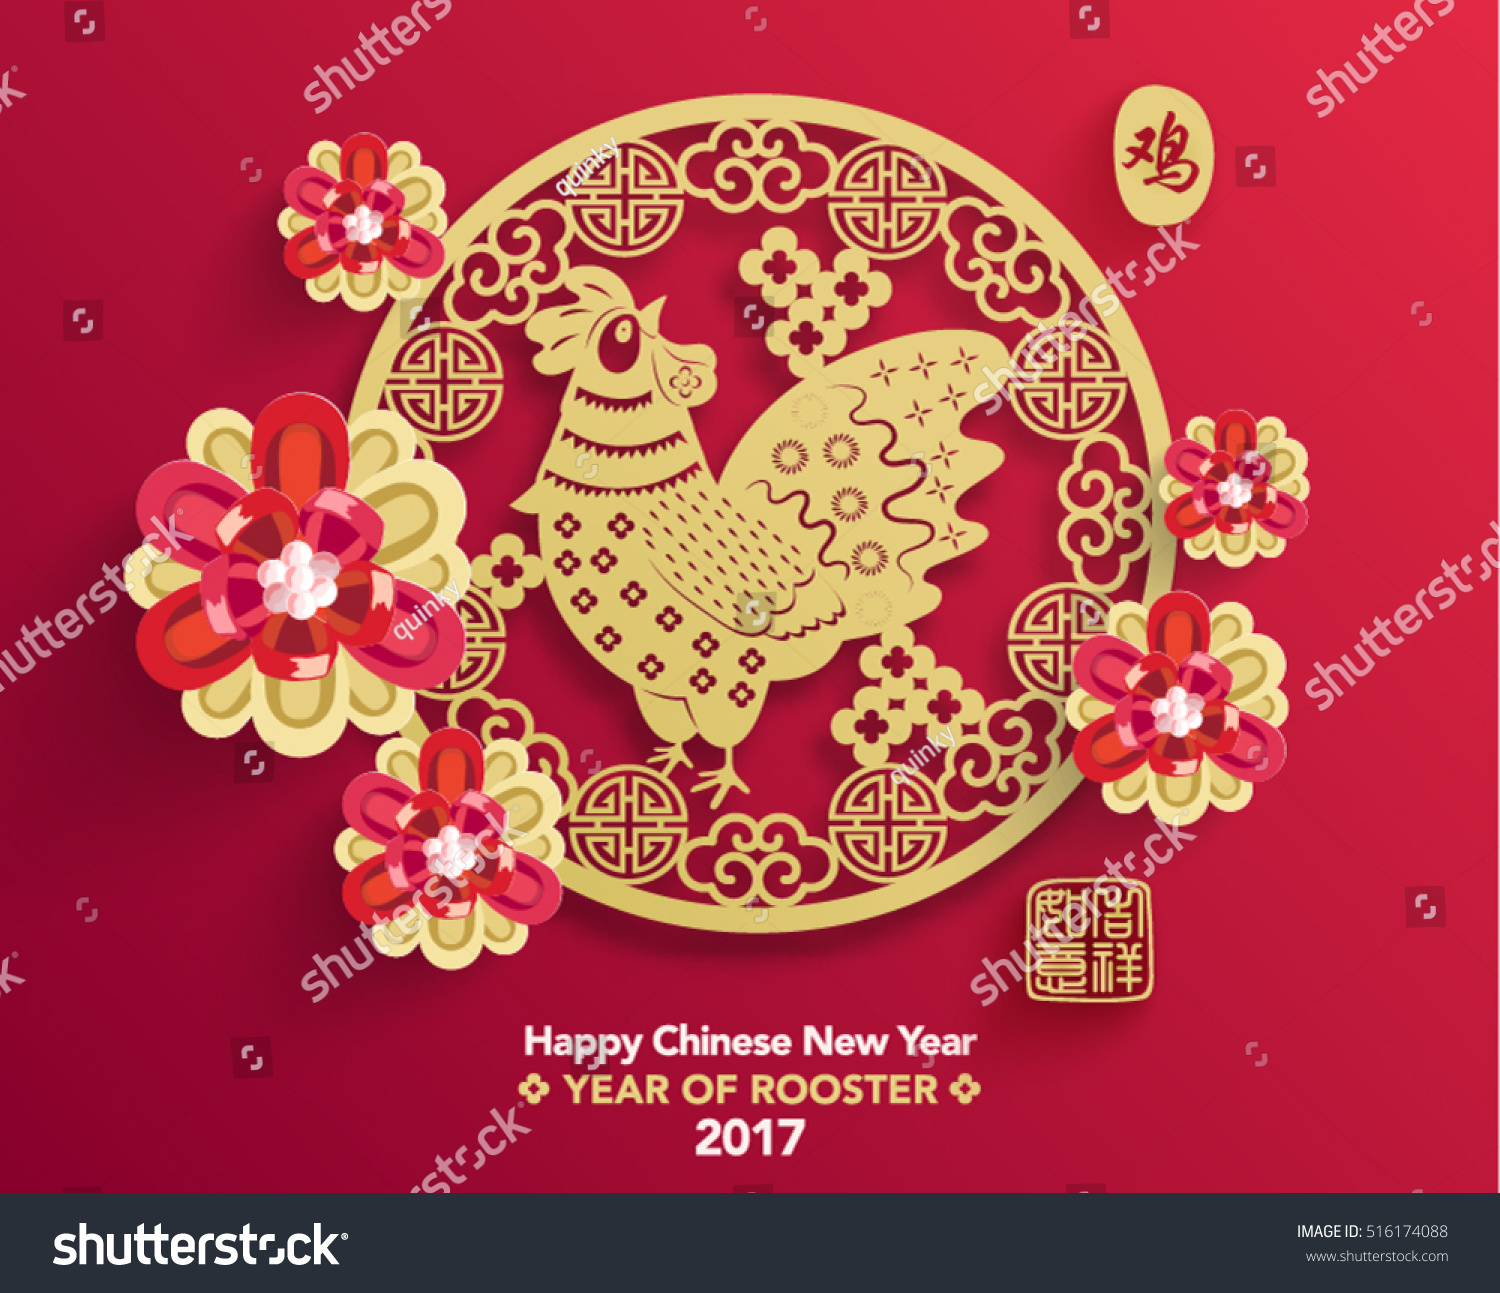 chinese new year 2017 year rooster のベクター画像素材 ロイヤリティ